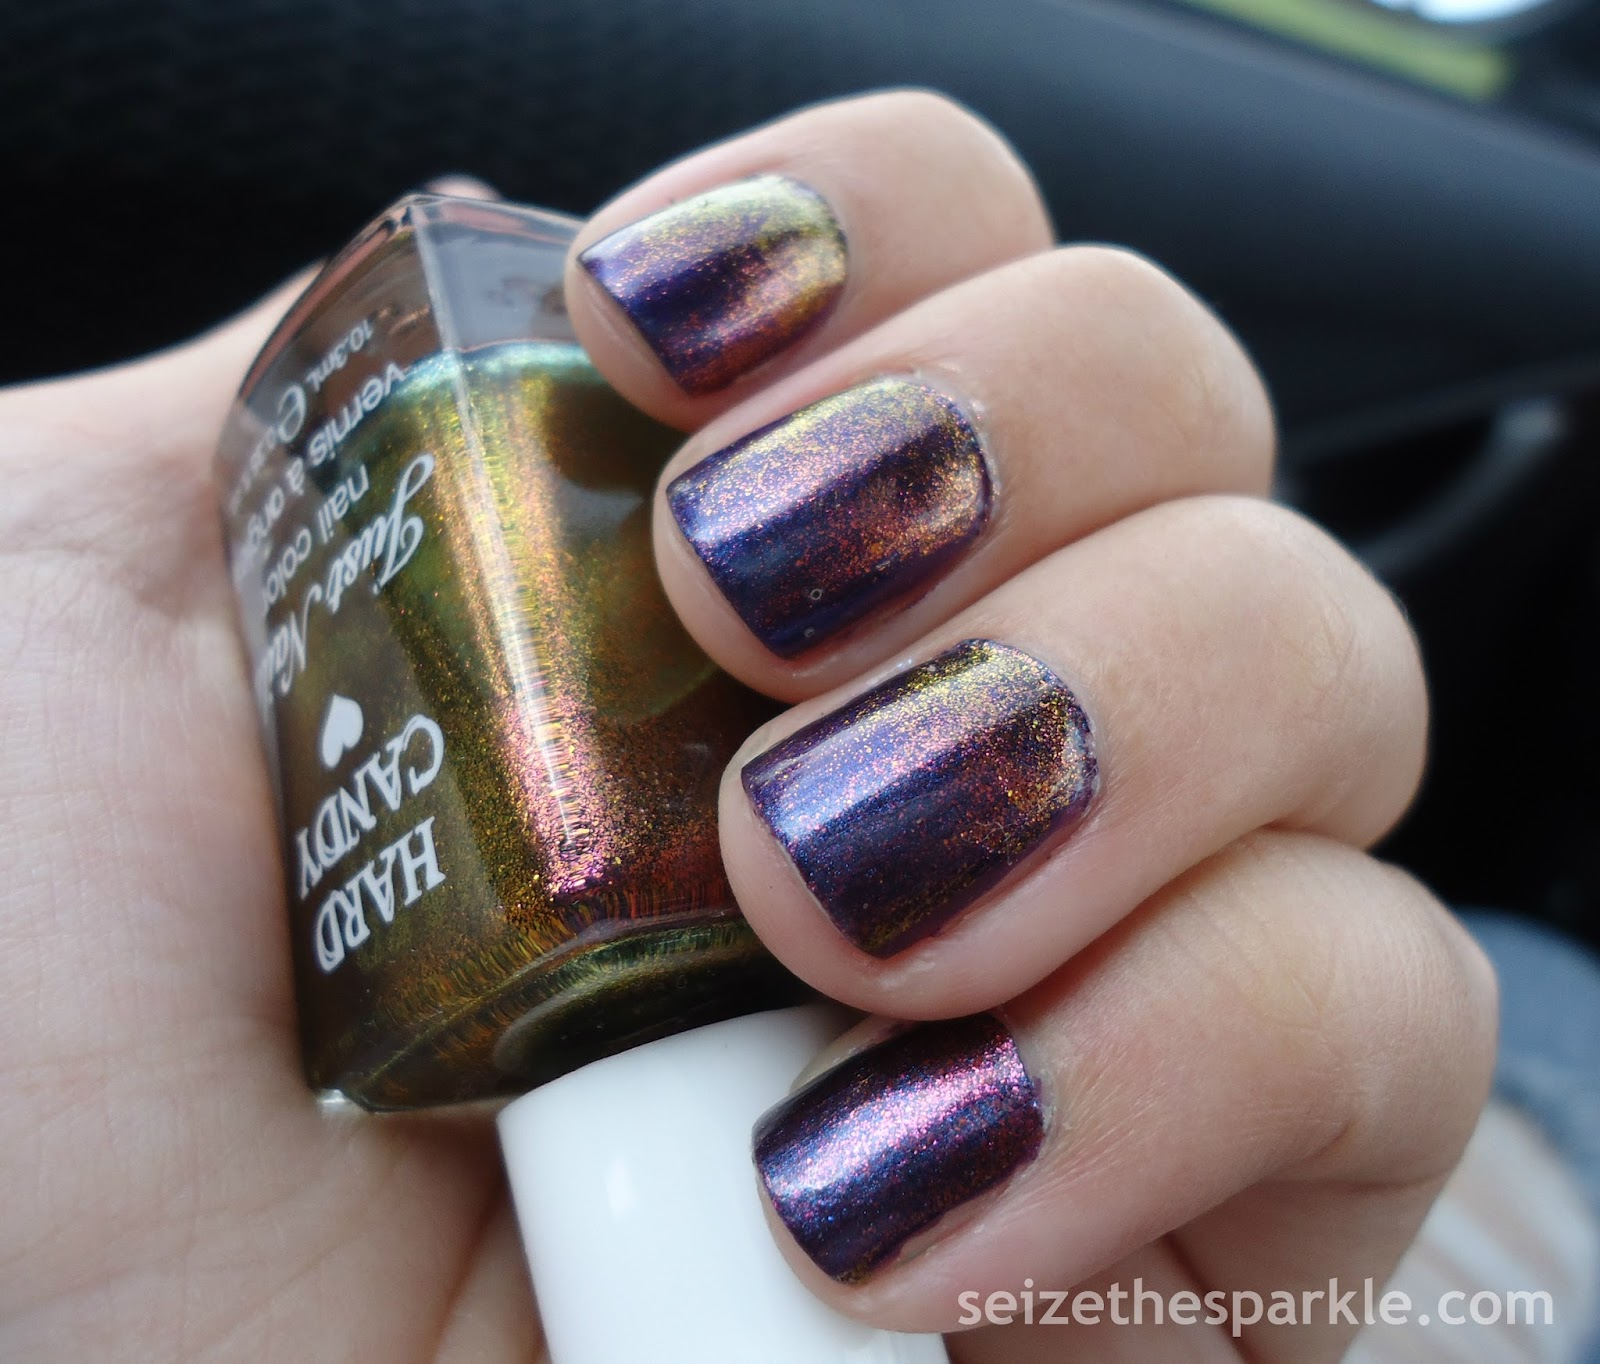 Orly Mysterious Curse, Hard Candy Beetle, NYC Shimmer Blast